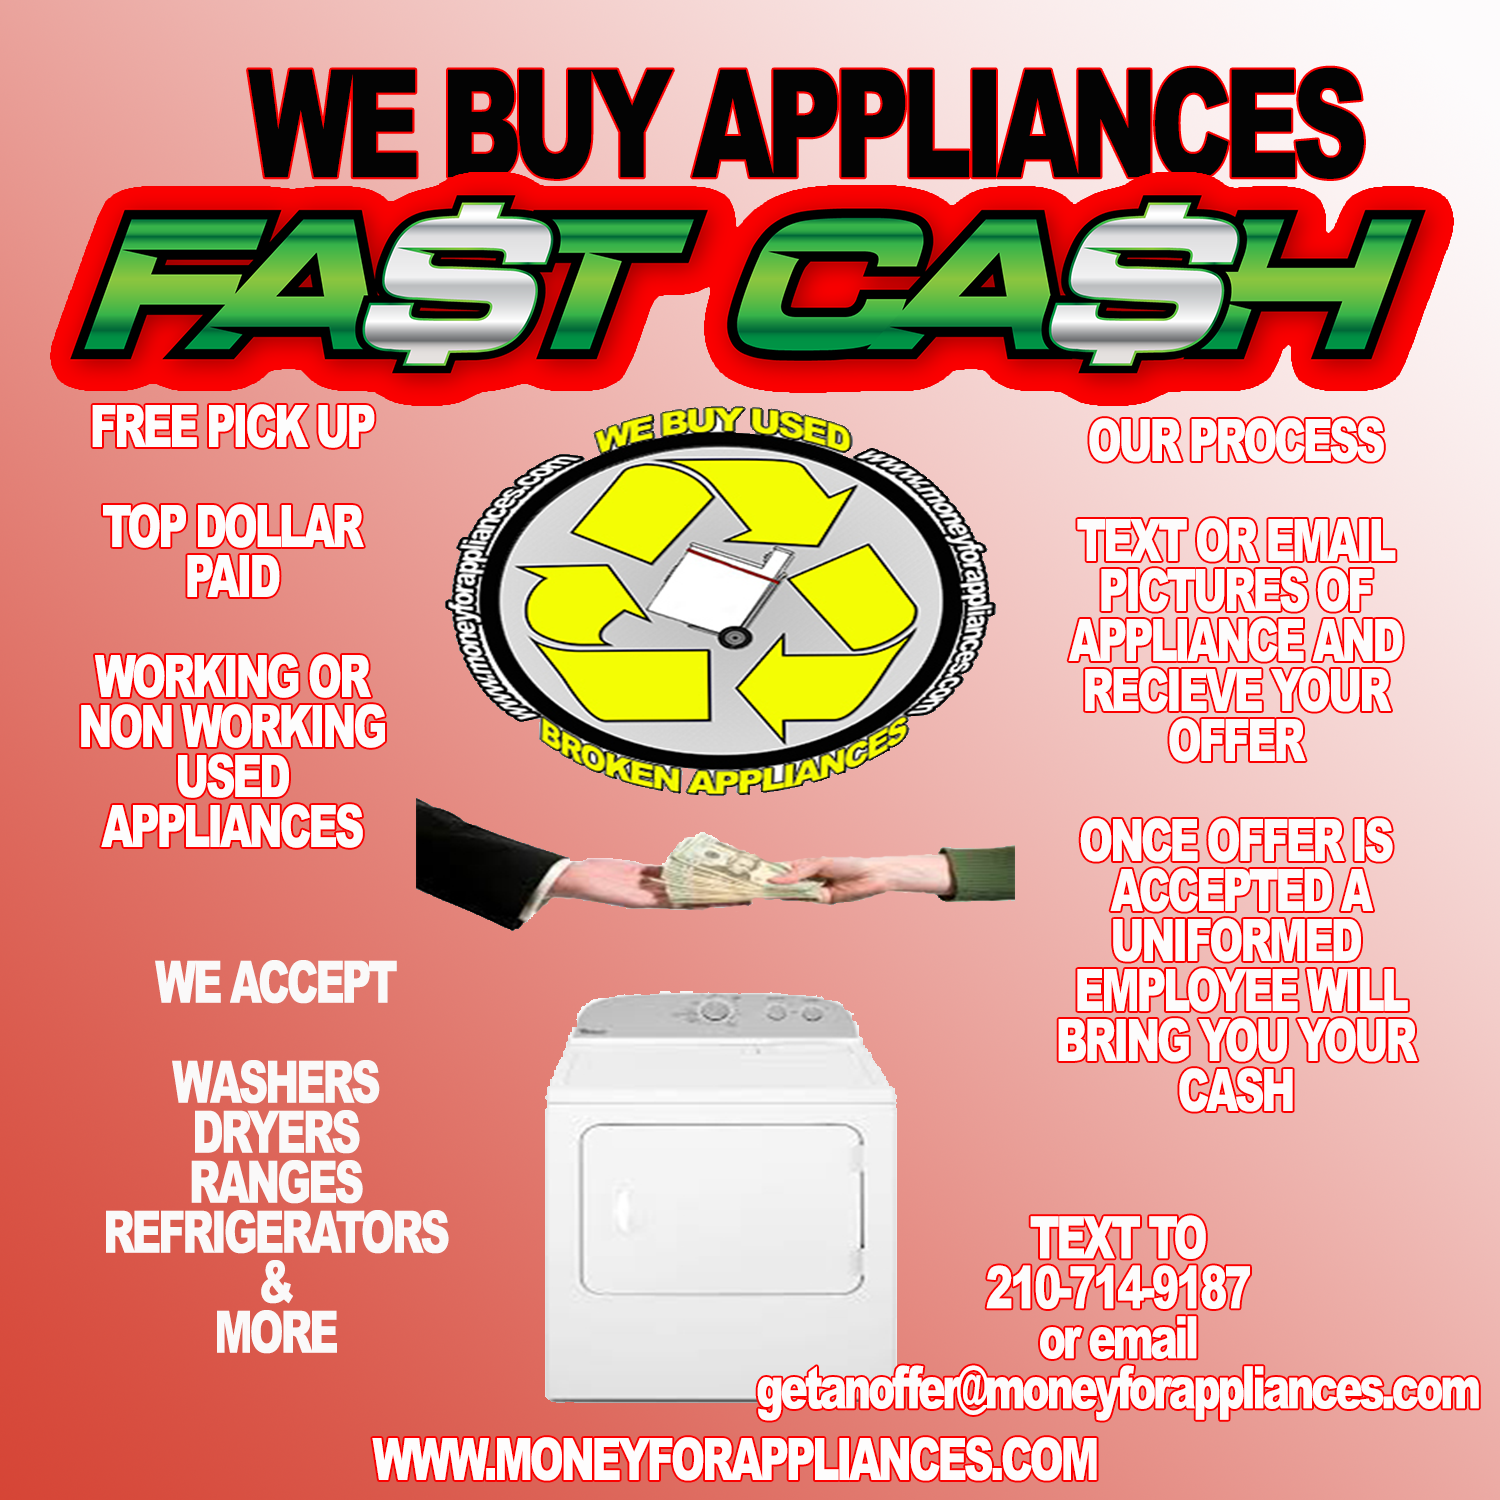 WE Buy Appliances San Antonio/ Appliance Repair San Antonio